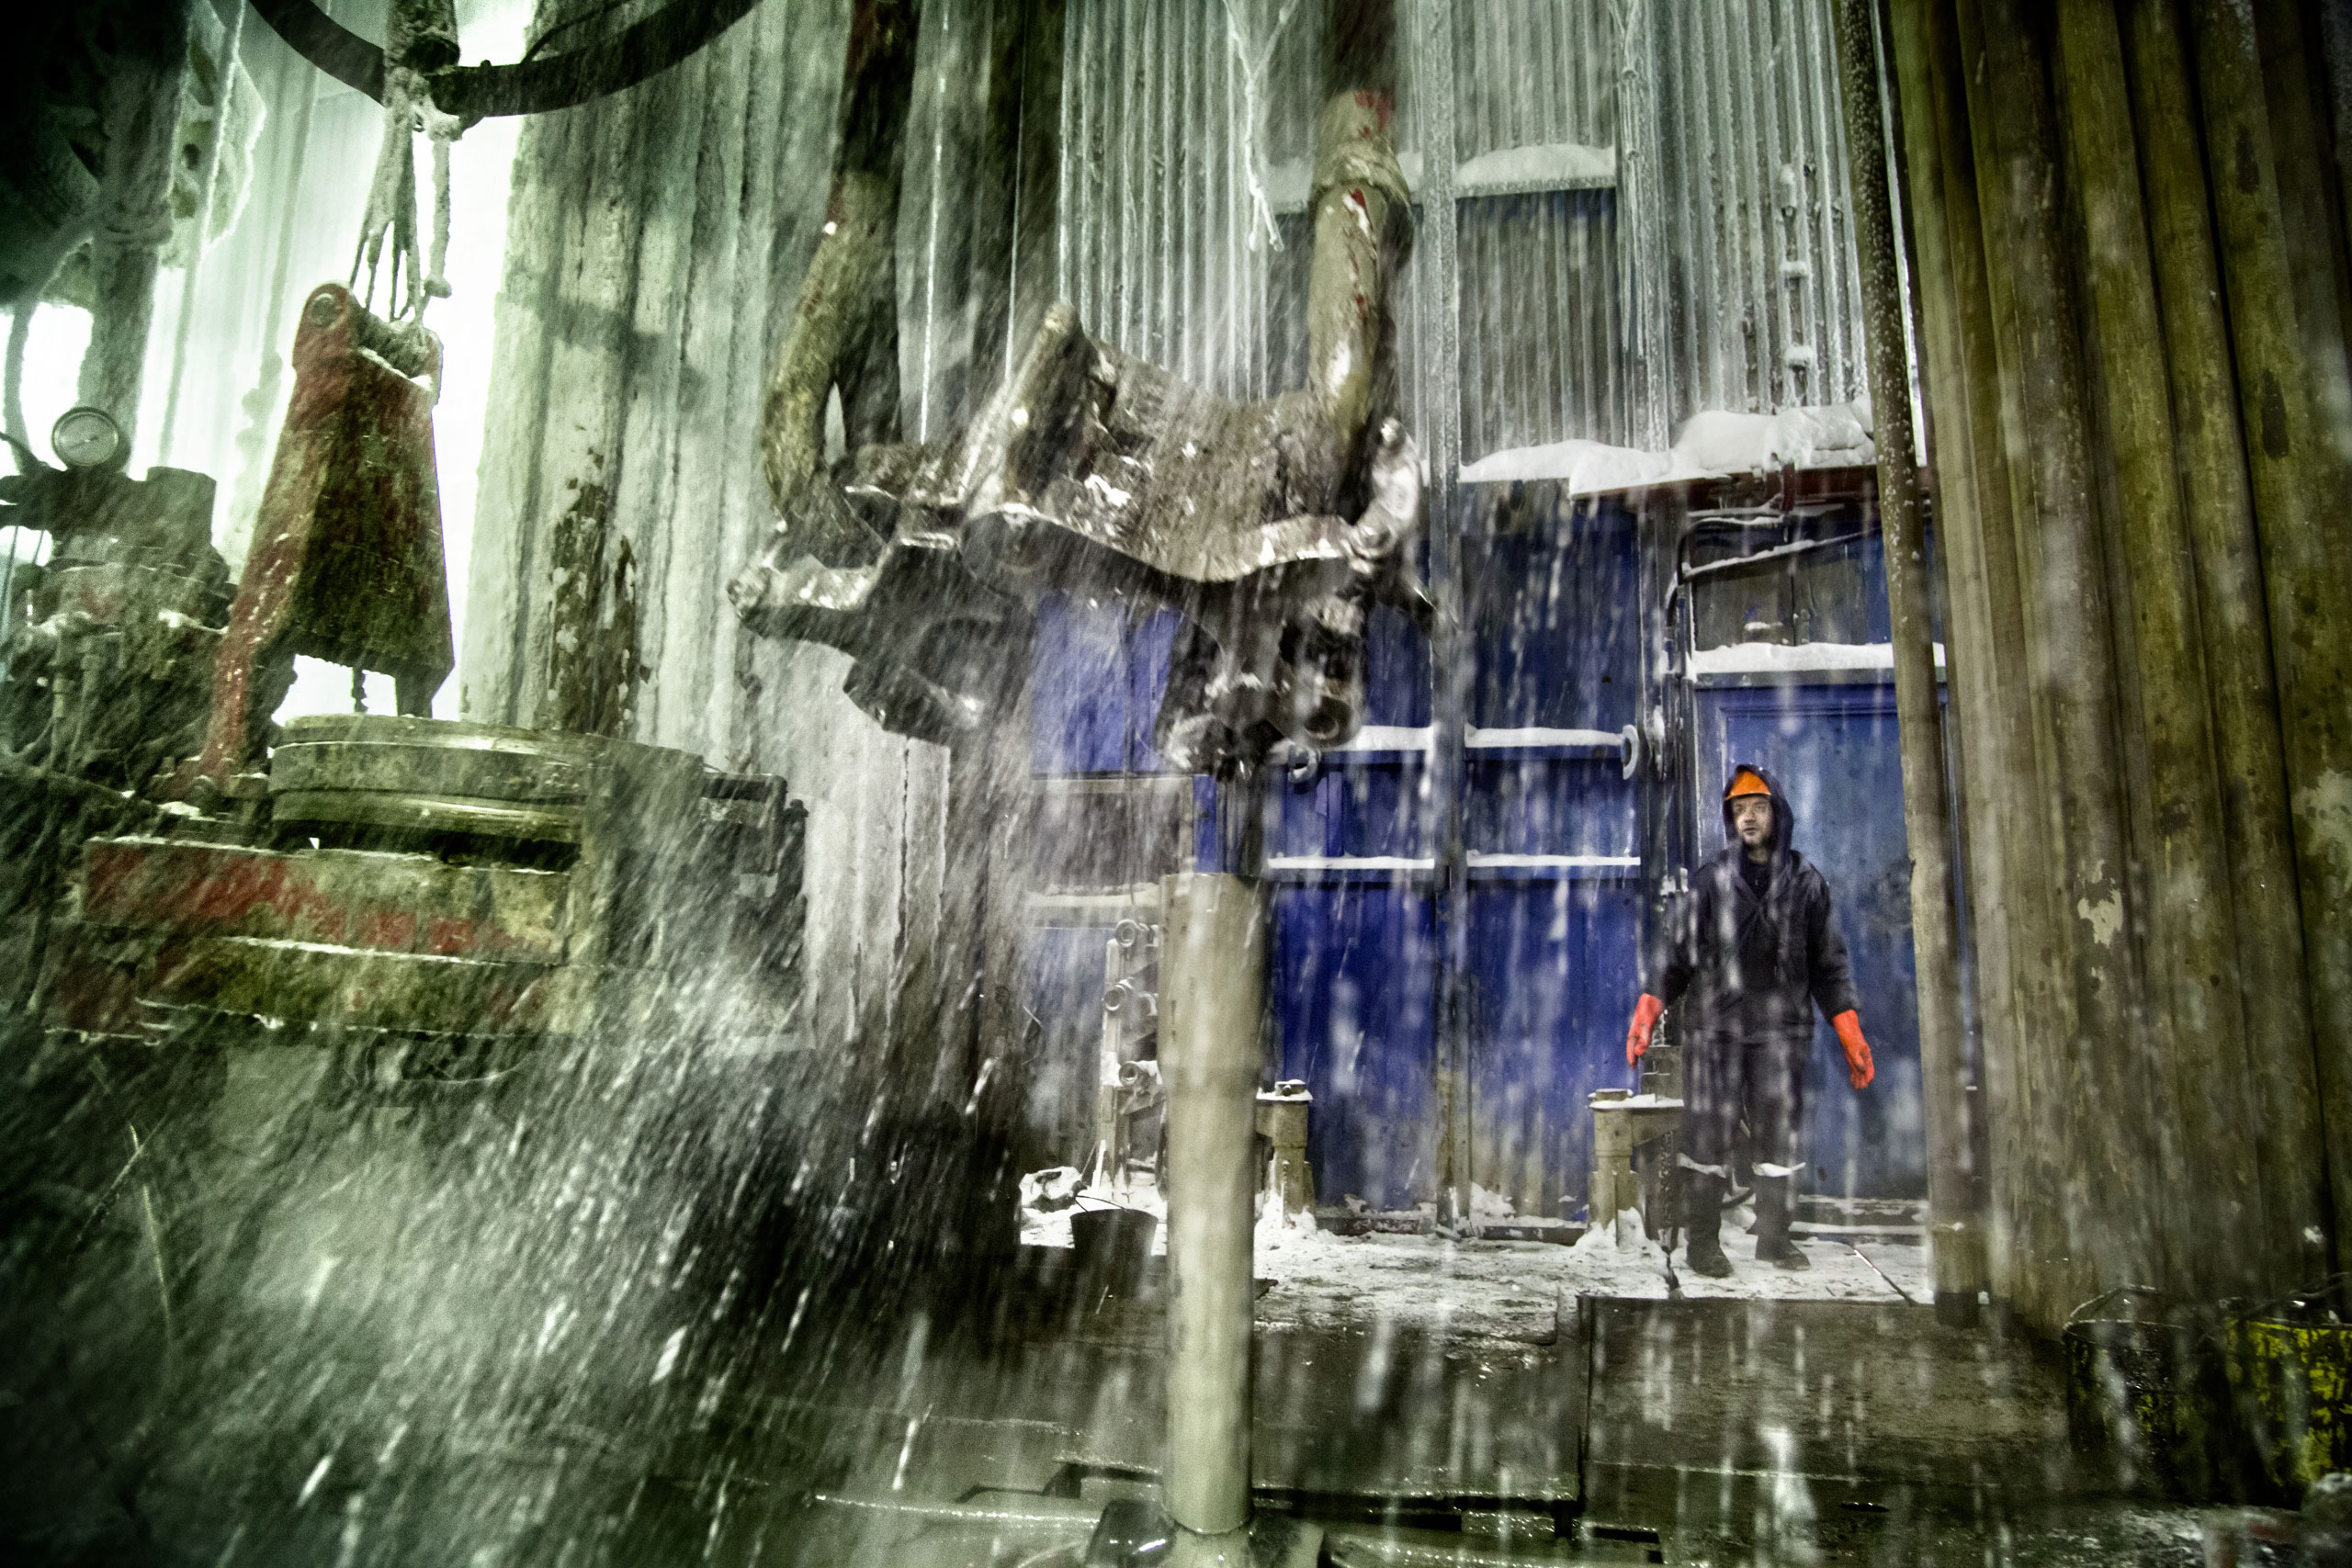 A Russian worker at a drilling well in Yamal, Arctic Siberia, Russia, which has the world's largest gas deposit, December 2014.